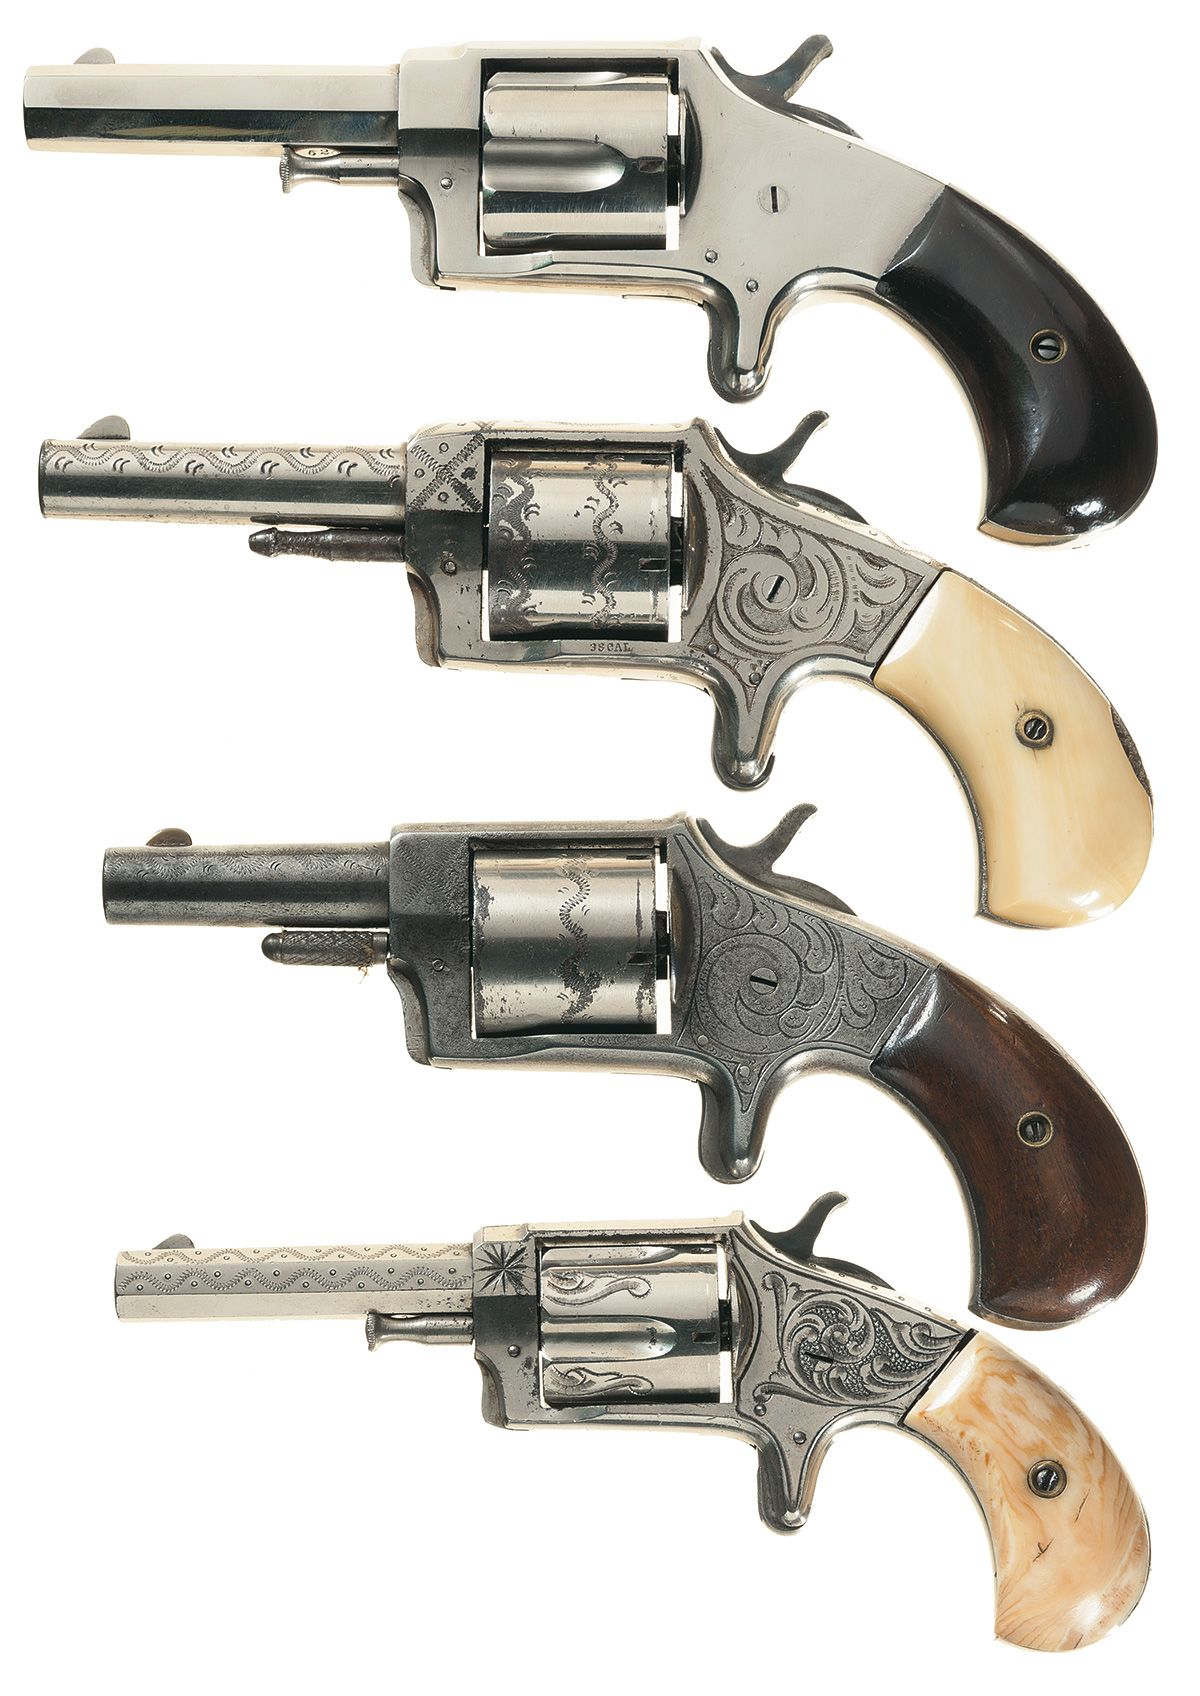 What is the manufacture date - Iver Johnson revolver serial